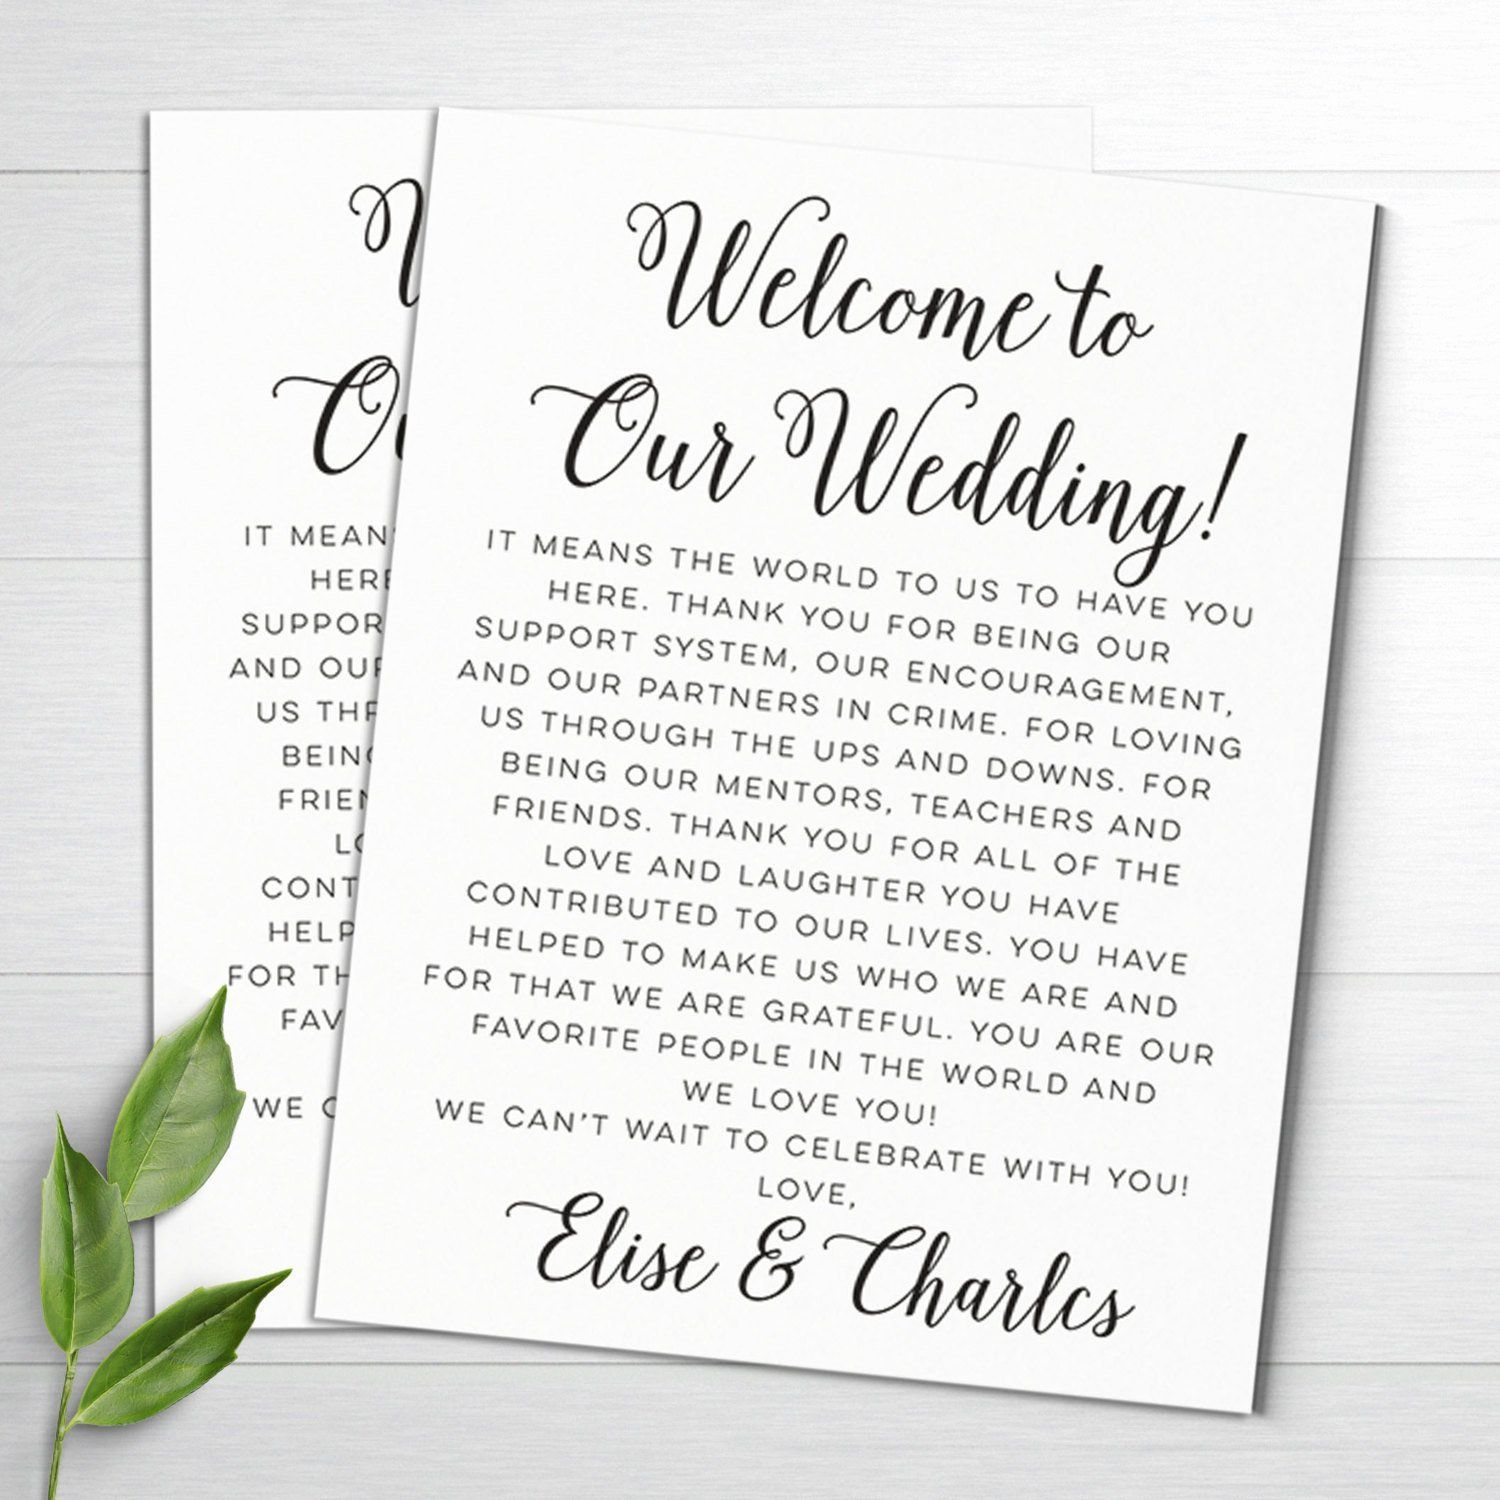 003 Stunning Wedding Welcome Letter Template Word Highest Clarity Full